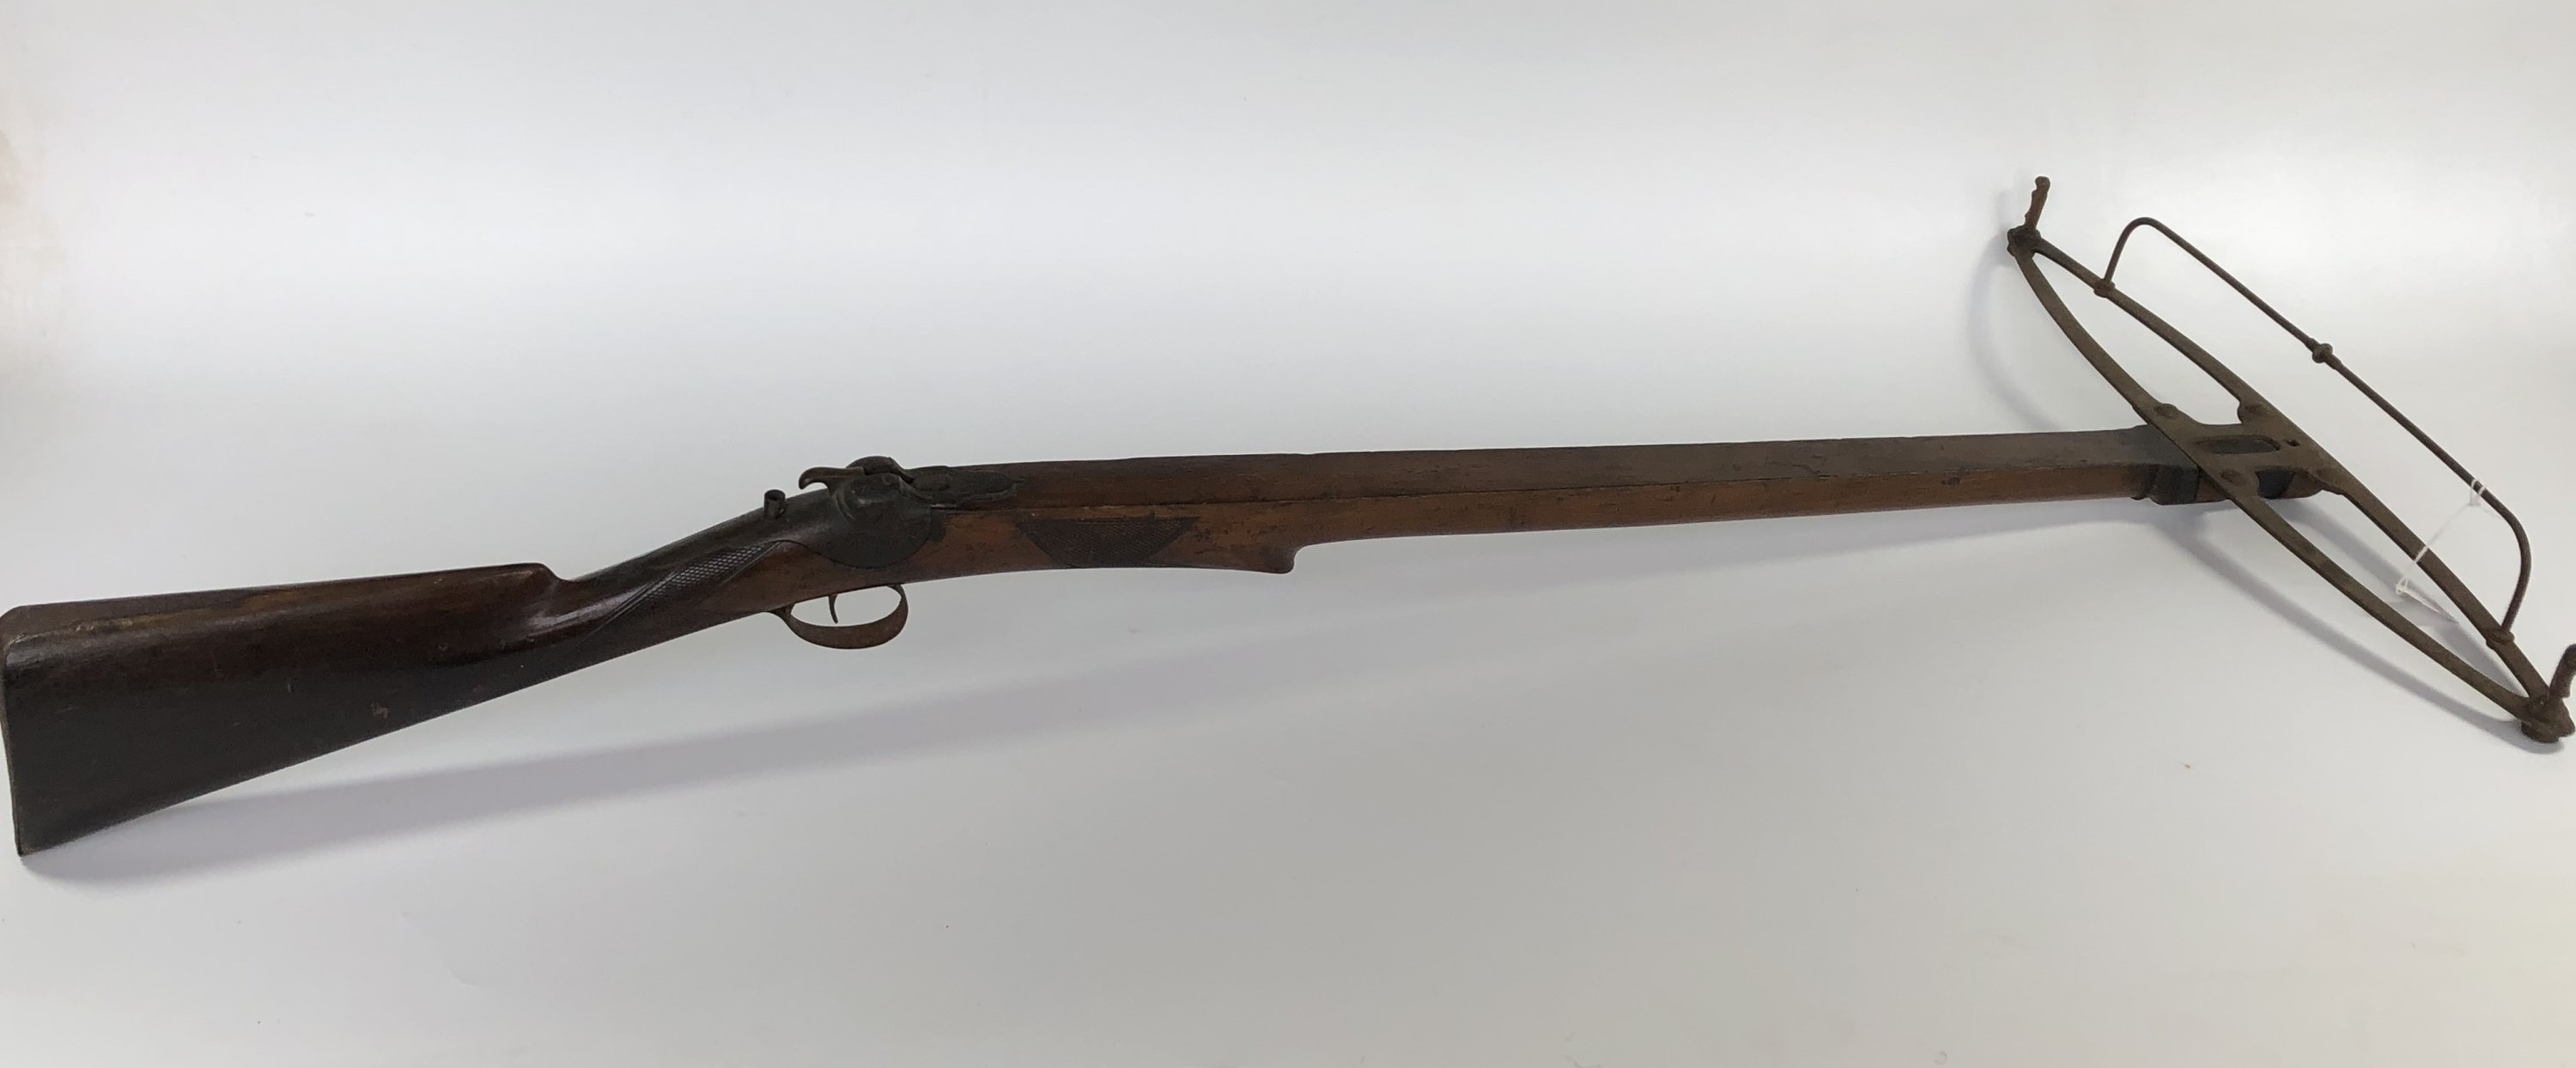 A Hodge`s Patent Elastic Gun, no. 23, circa 1850, having a walnut full stock fitted with rigid steel